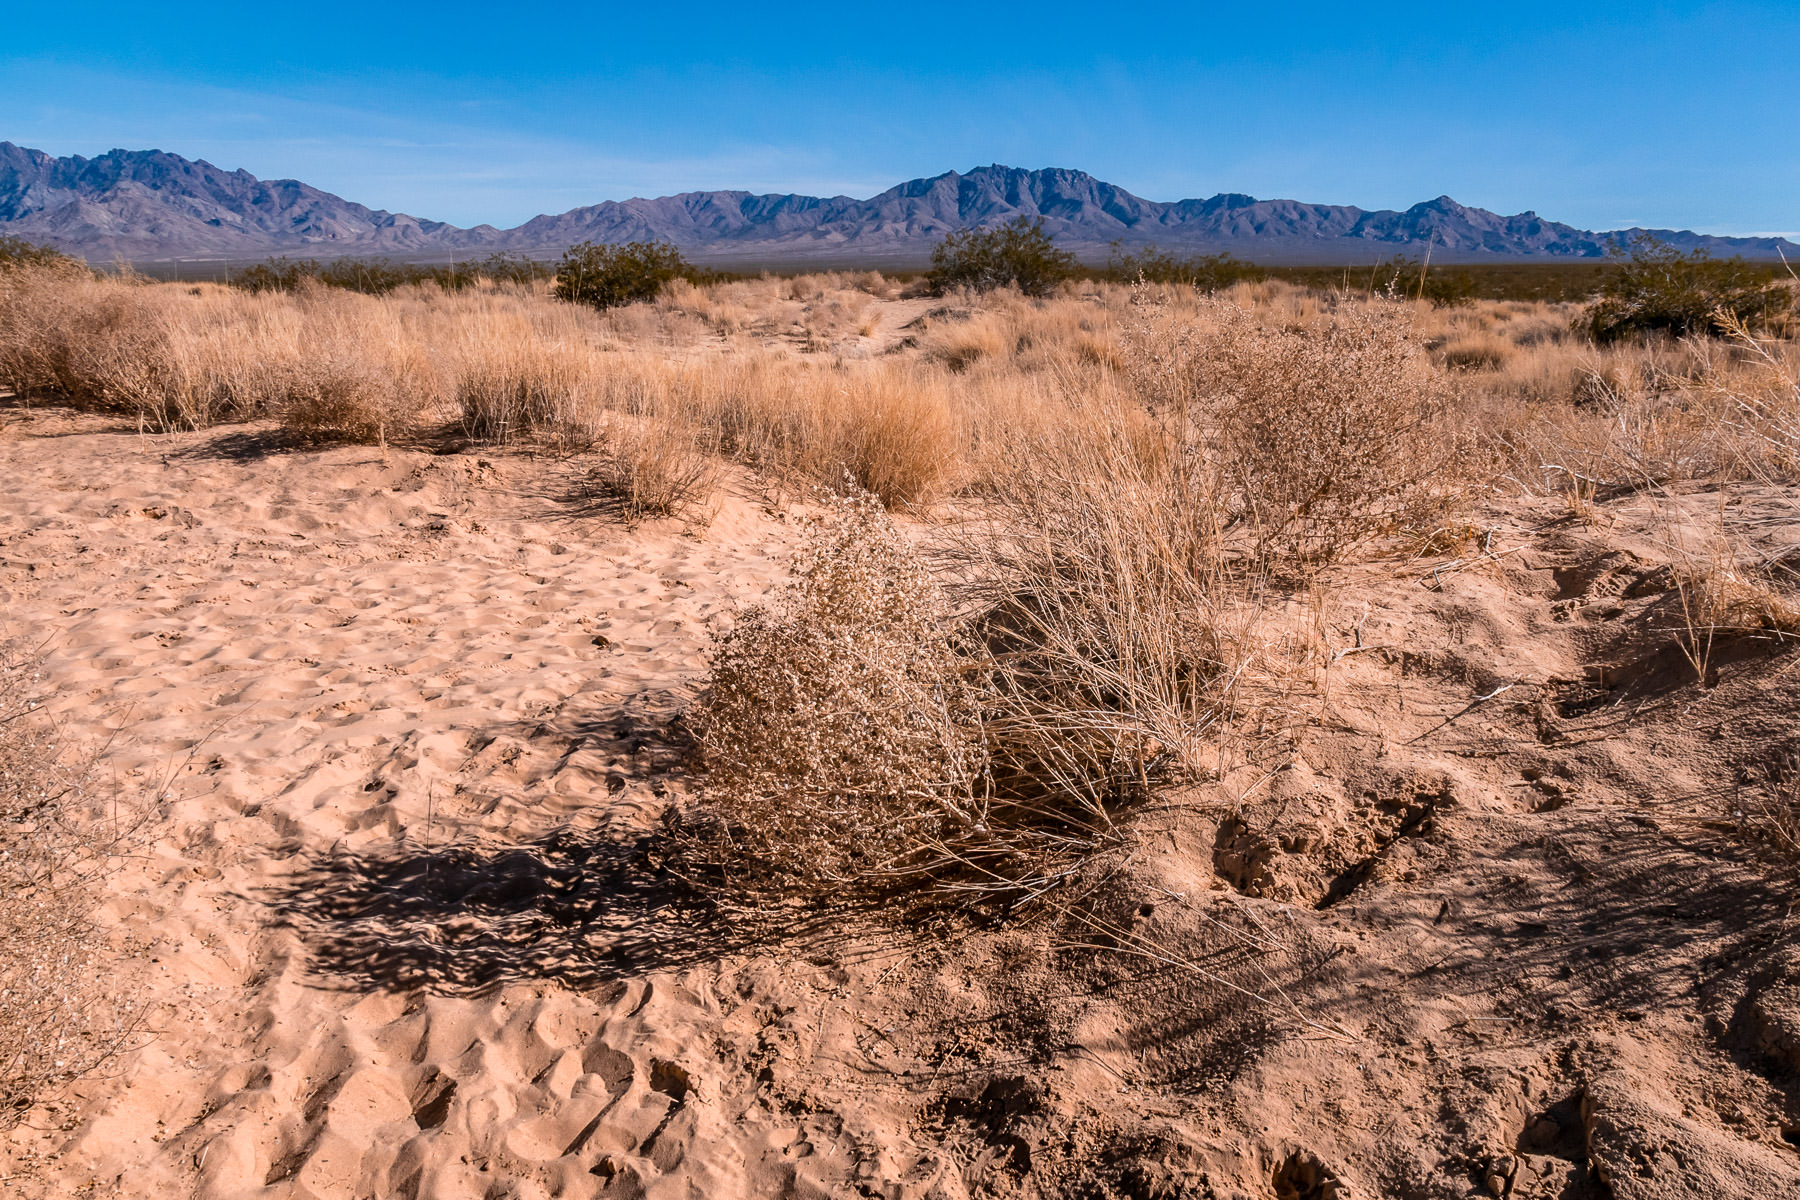 Desert scrub brush grows in the sand near Kelso Dunes at the Mojave National Preserve, California.